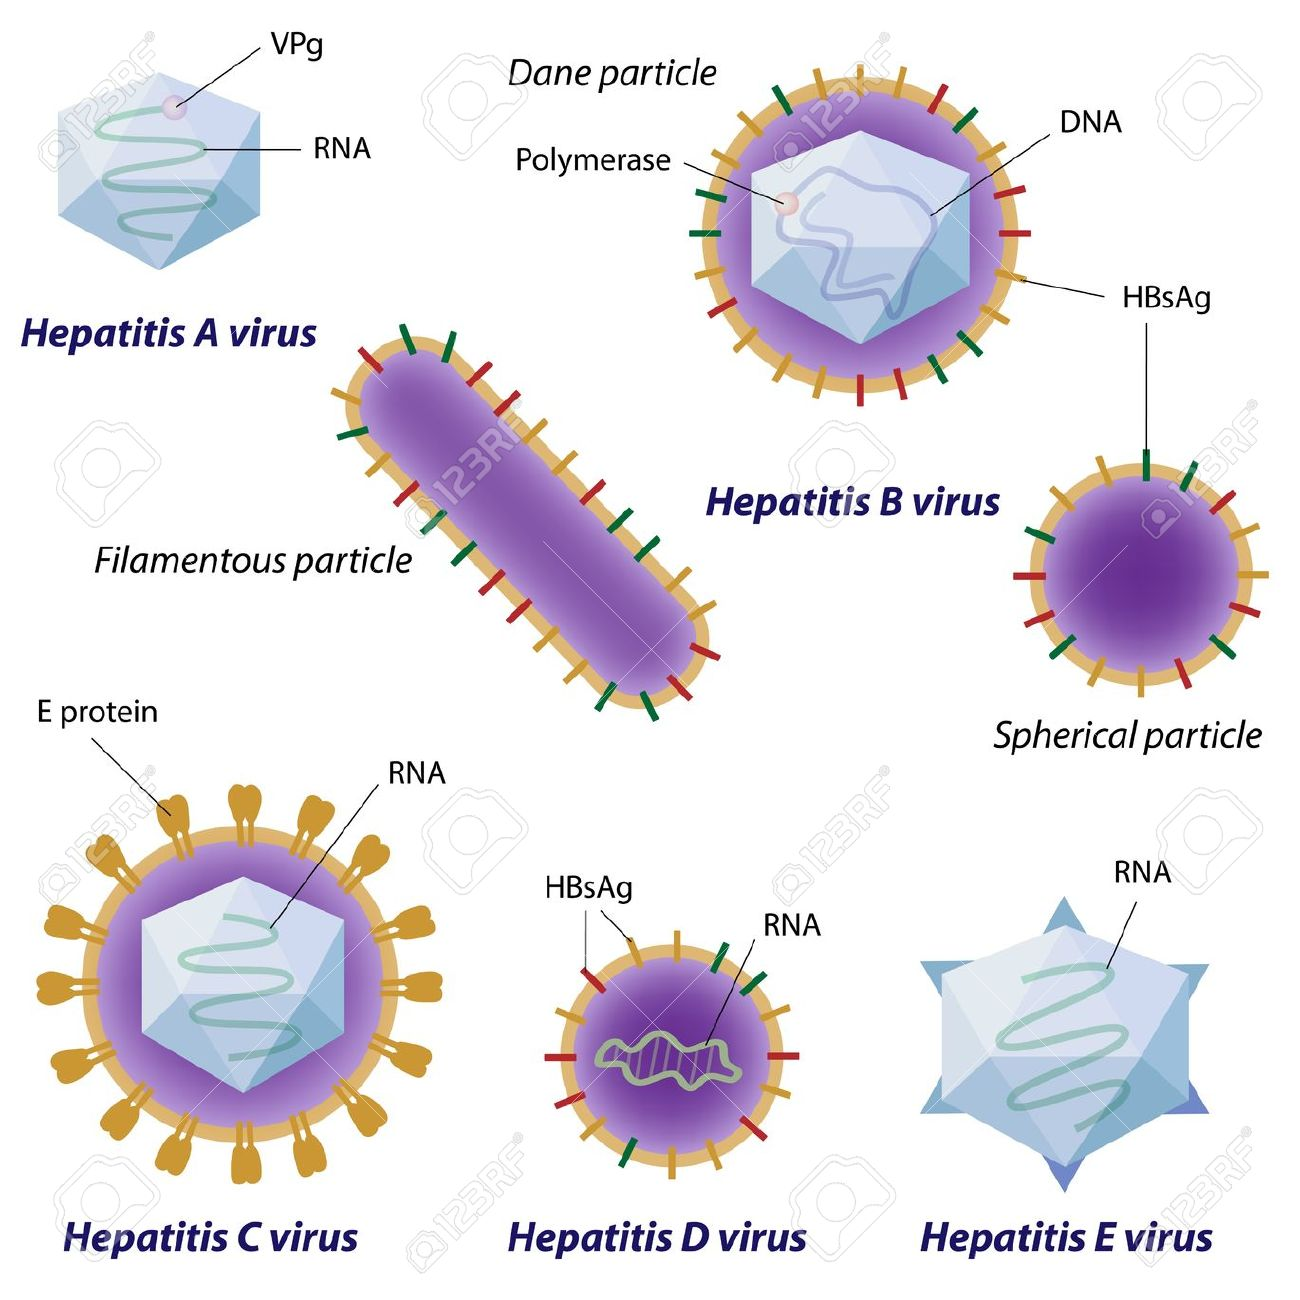 12921610-Hepatitis-viruses-comparison-Stock-Vector-hepatitis-virus-viral.jpg